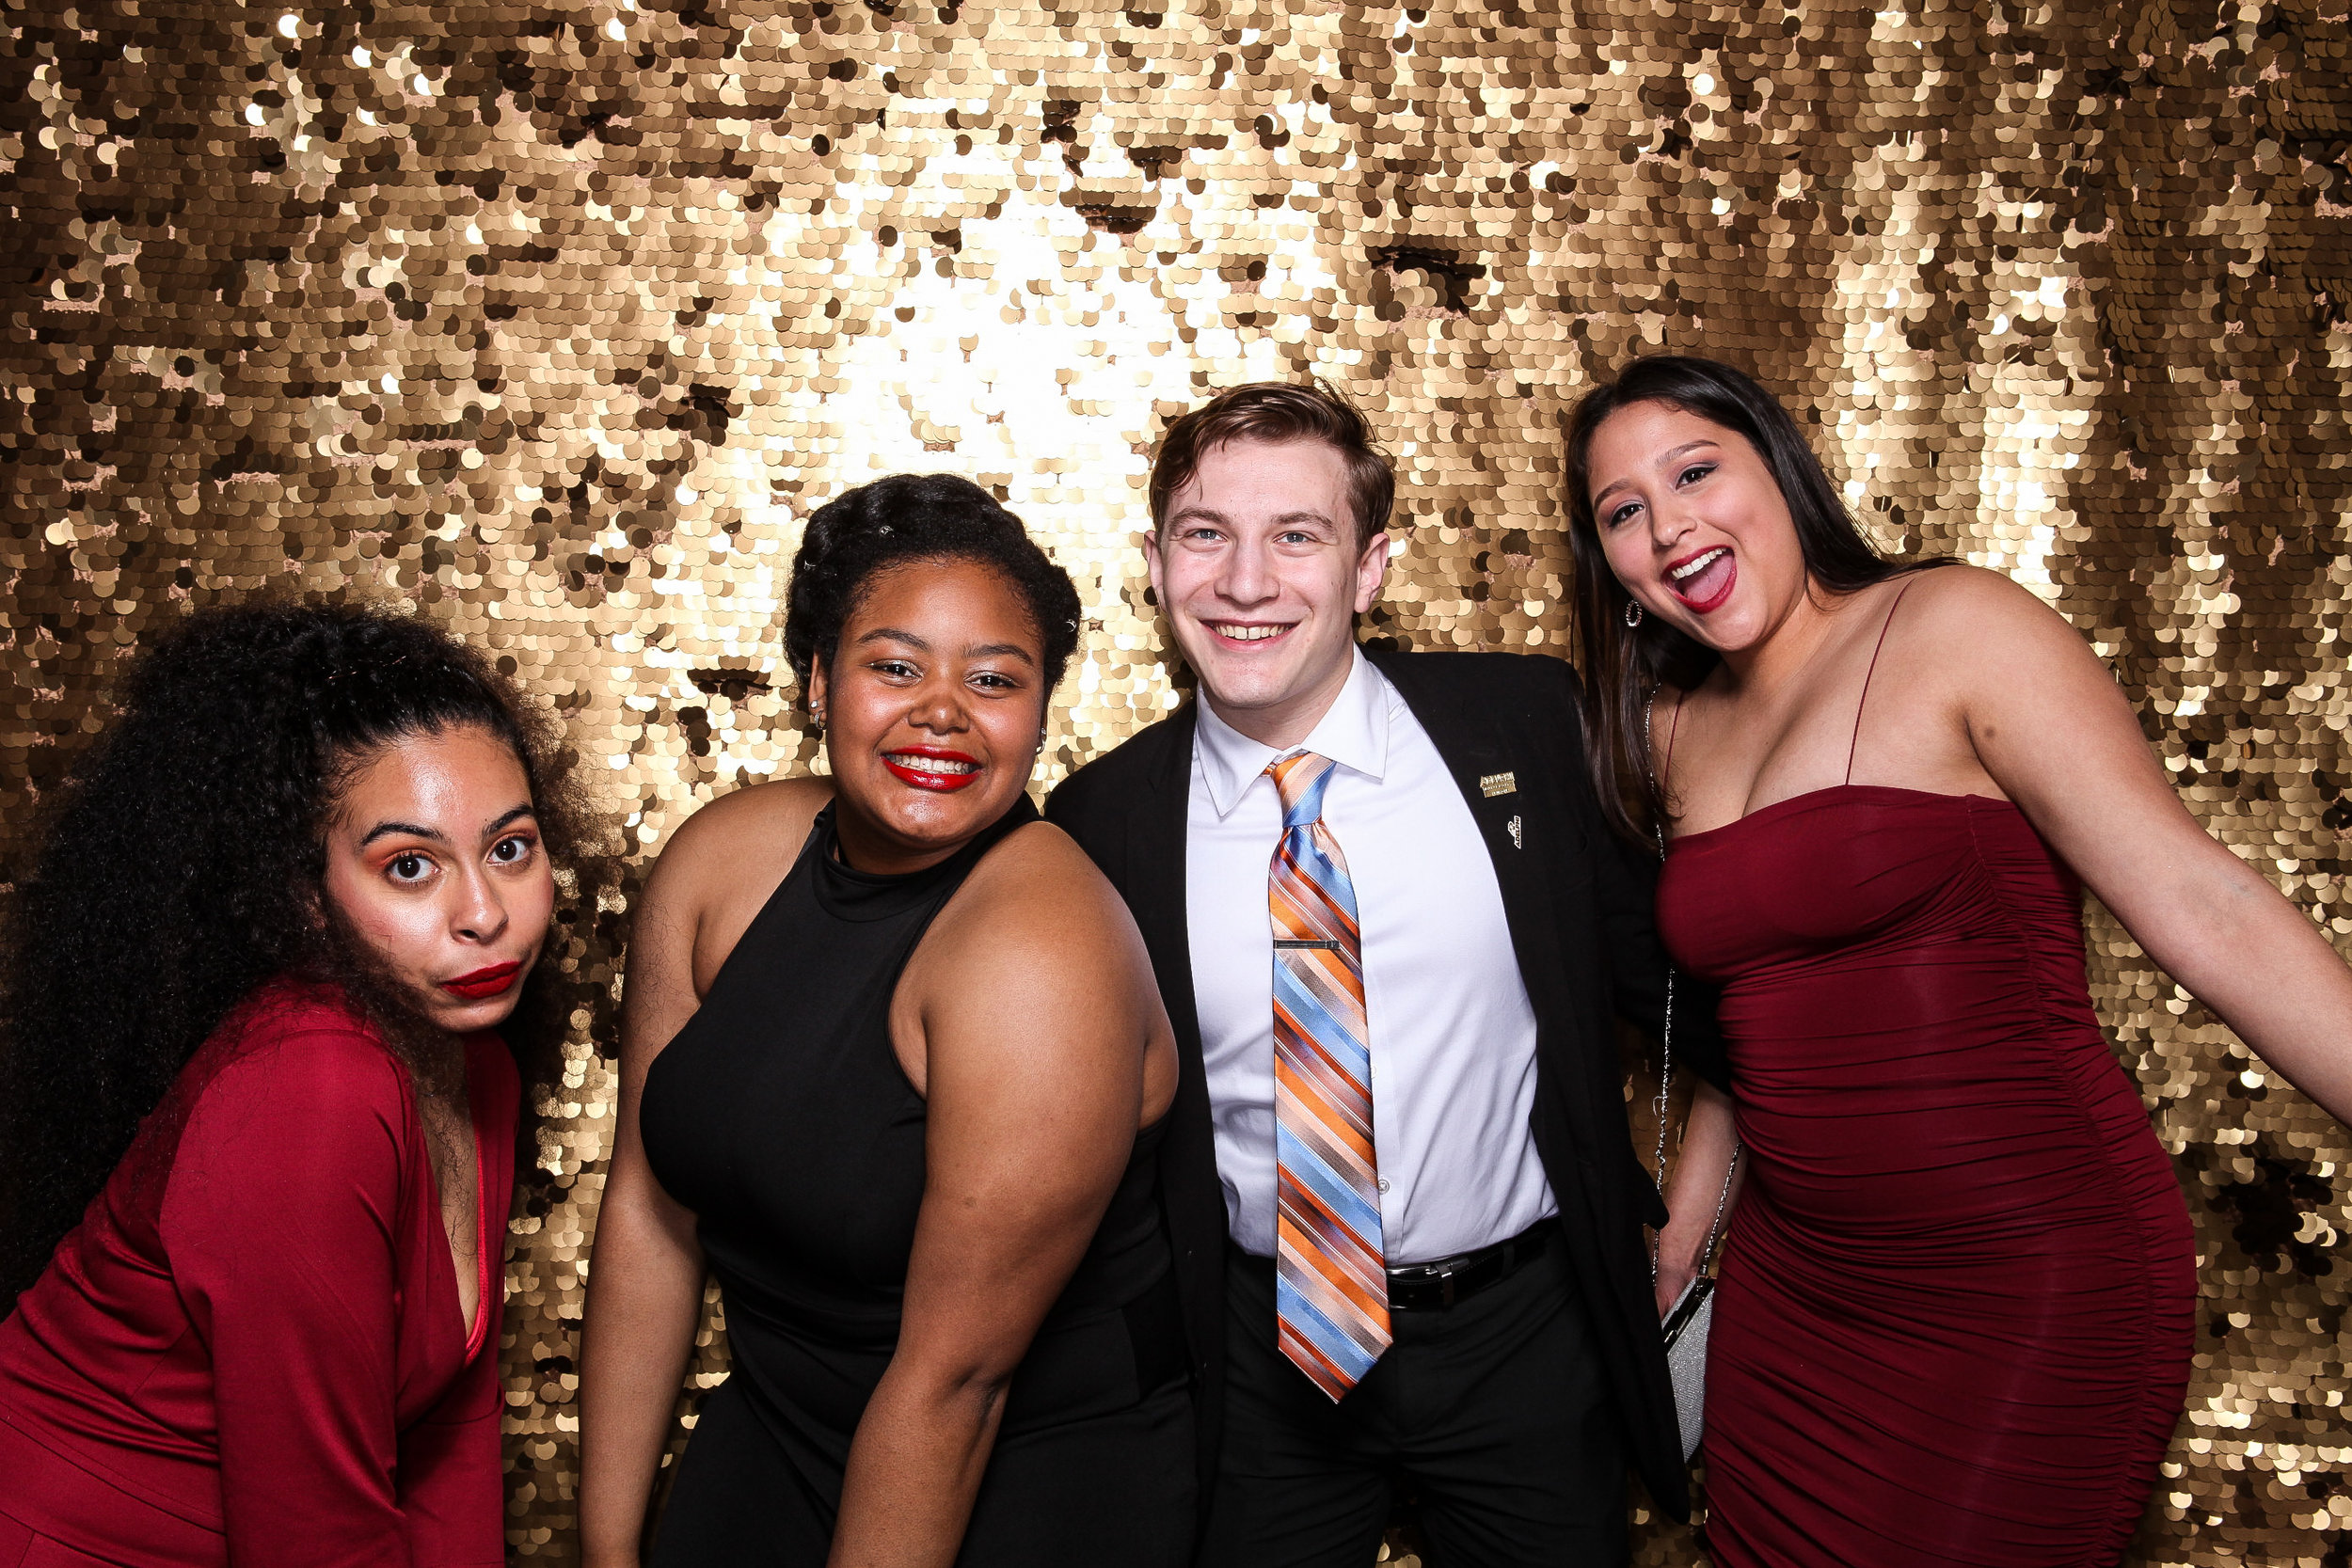 20190503_Adelphi_Senior_Formal-401.jpg